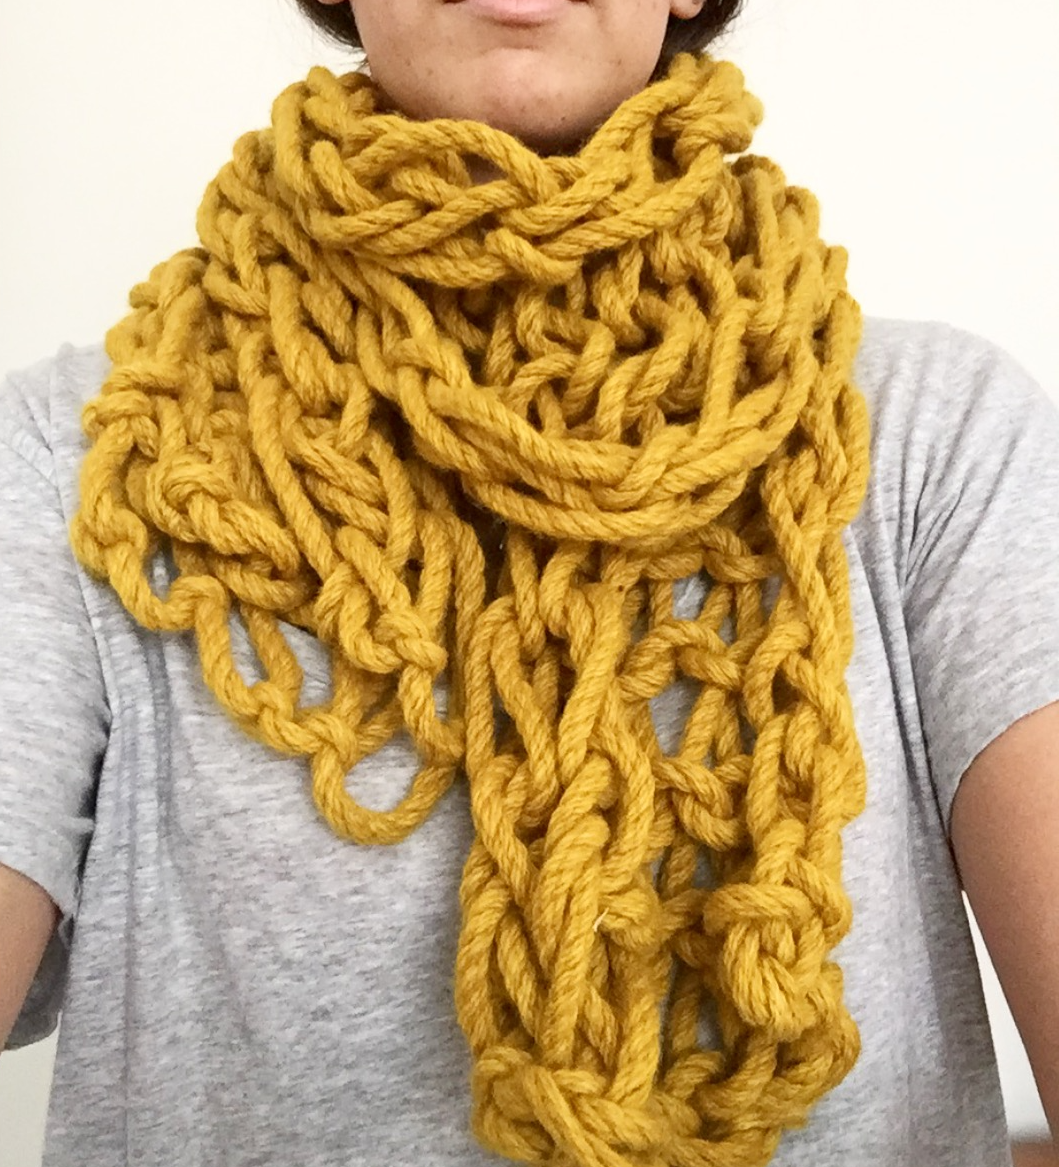 Learn How to Arm-Knit: Woolly Scarf